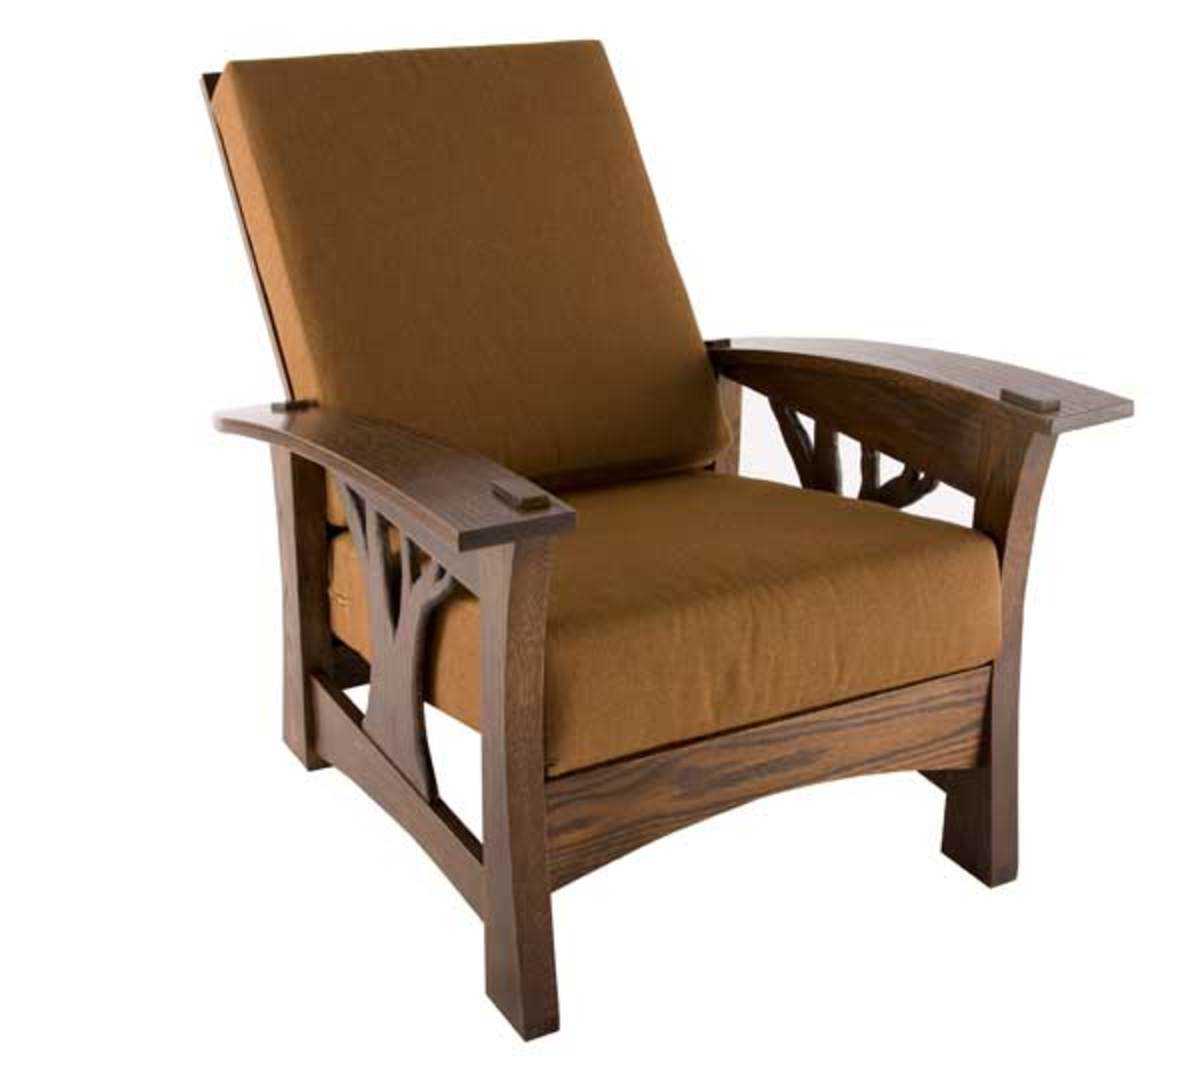 Brace's tree-motif 'Arbor Bow Arm Morris' chair is one of his signature pieces.